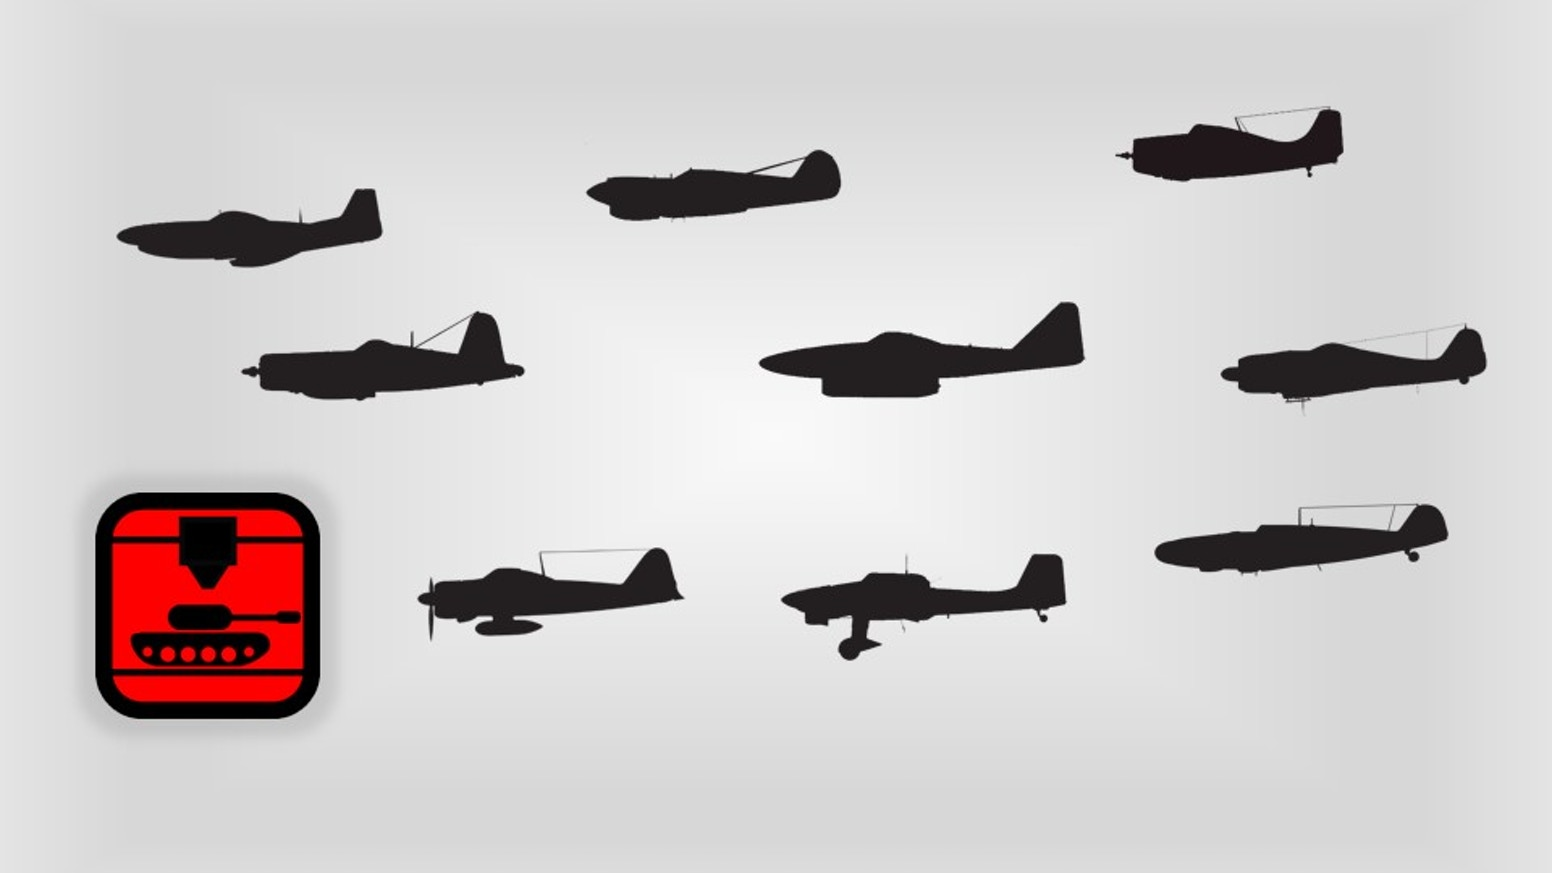 3D Printable Airplanes (Re-Launch) by 3D Wargaming — Kickstarter